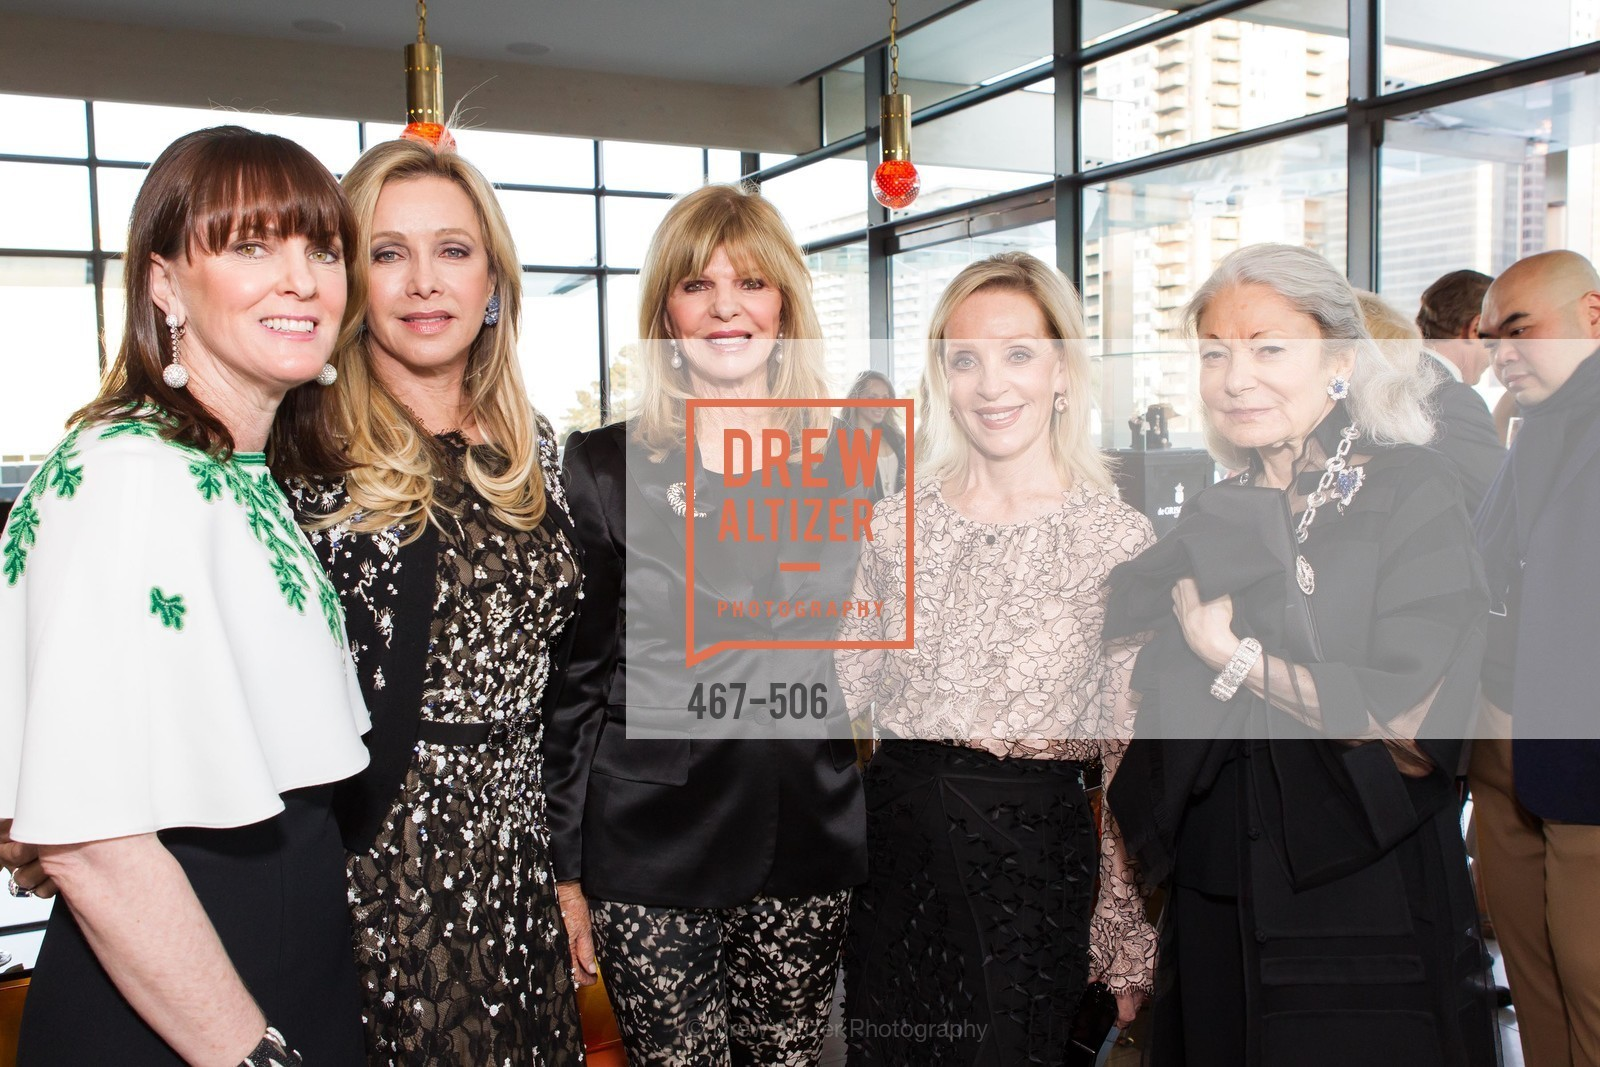 Allison Speer, Lauren King, Susan Niven, Barbara Brown, Denise Hale, 140408-grisogono-final, US. US, April 9th, 2014,Drew Altizer, Drew Altizer Photography, full-service agency, private events, San Francisco photographer, photographer california